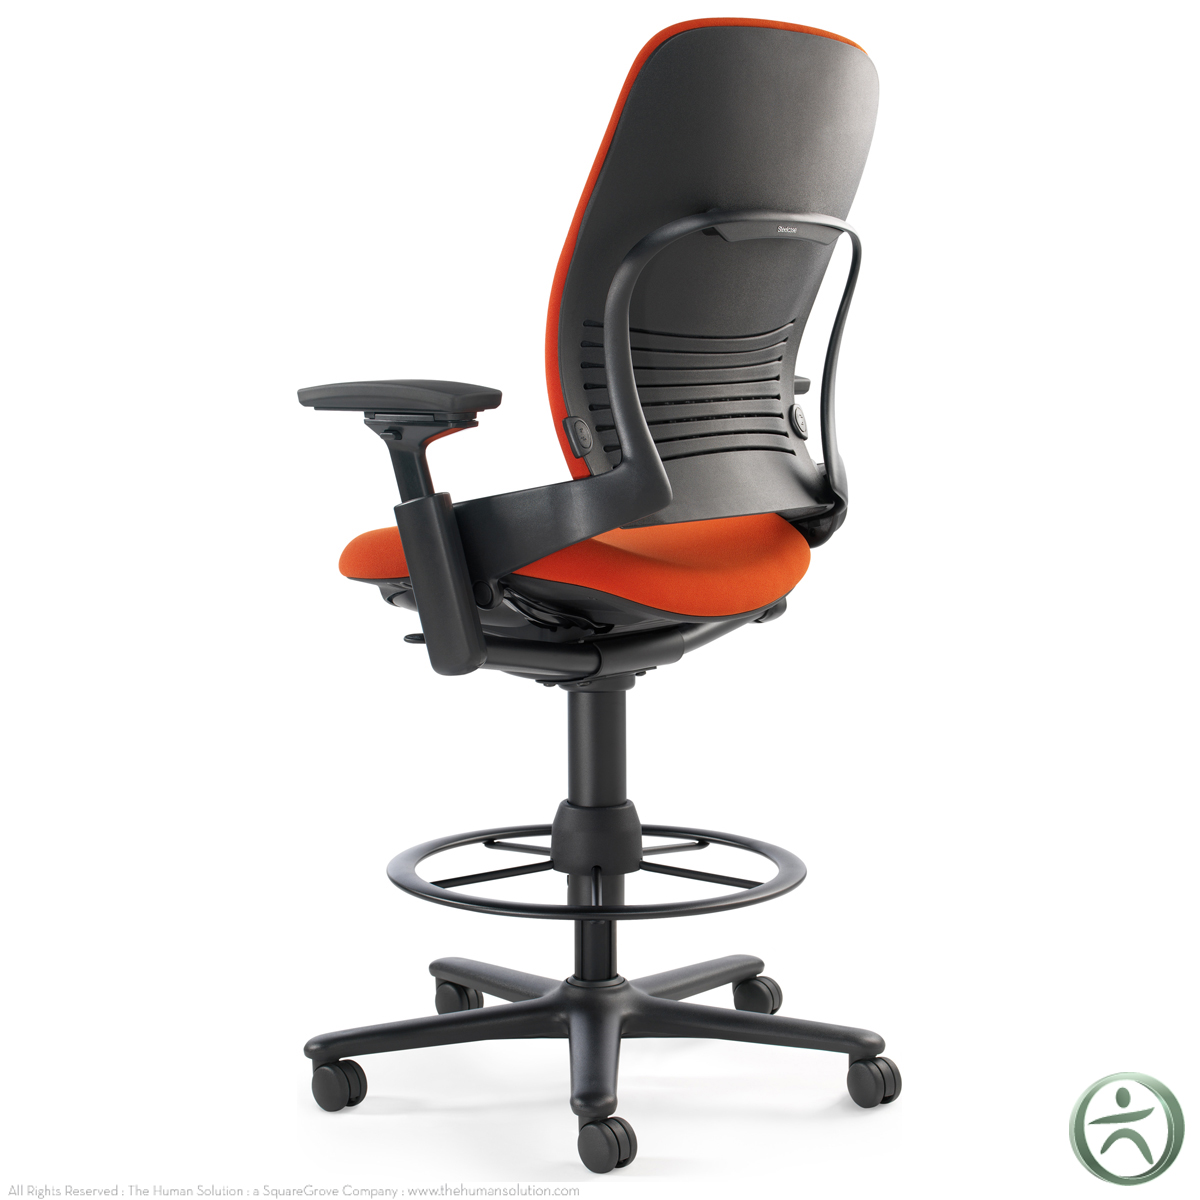 Steelcase leap drafting stool shop steelcase leap for Steelcase leap